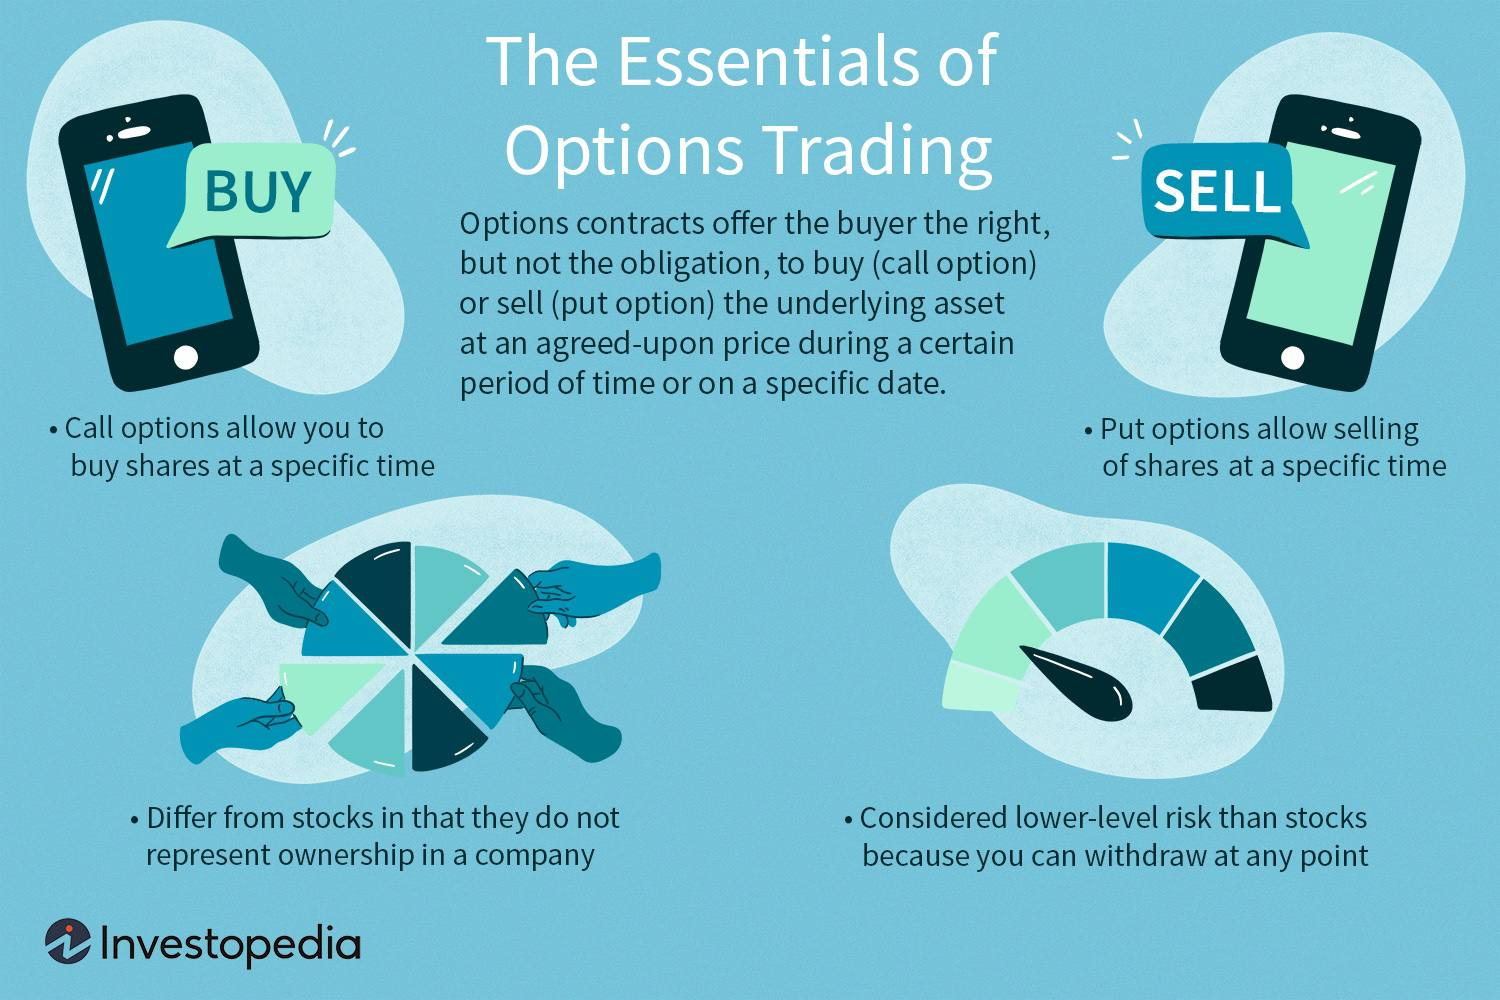 cara trading options